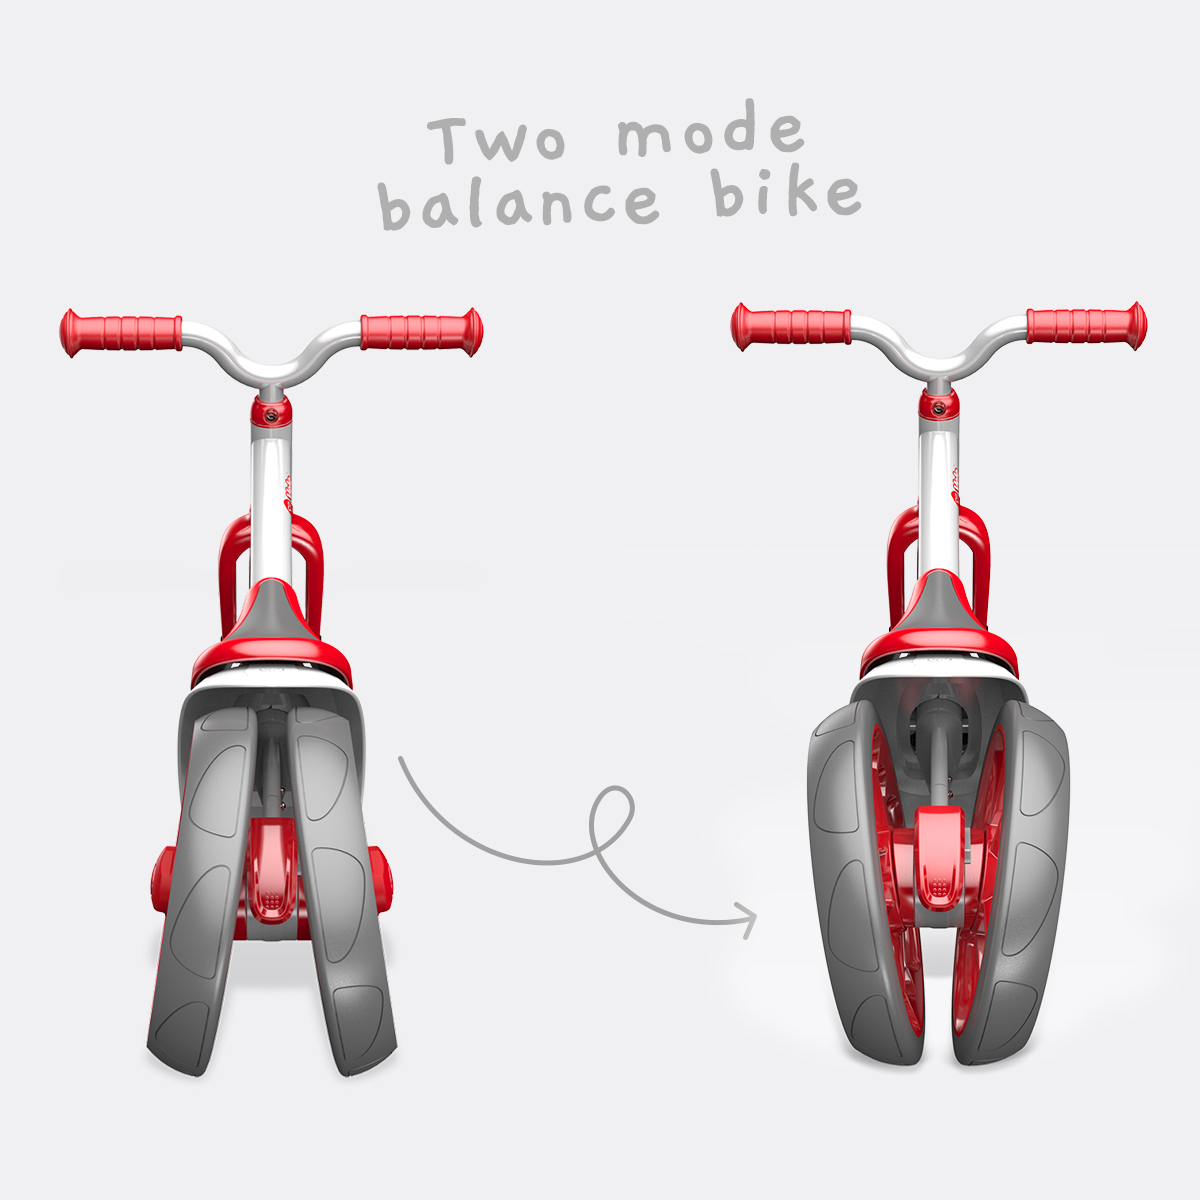 Two mode balance bike